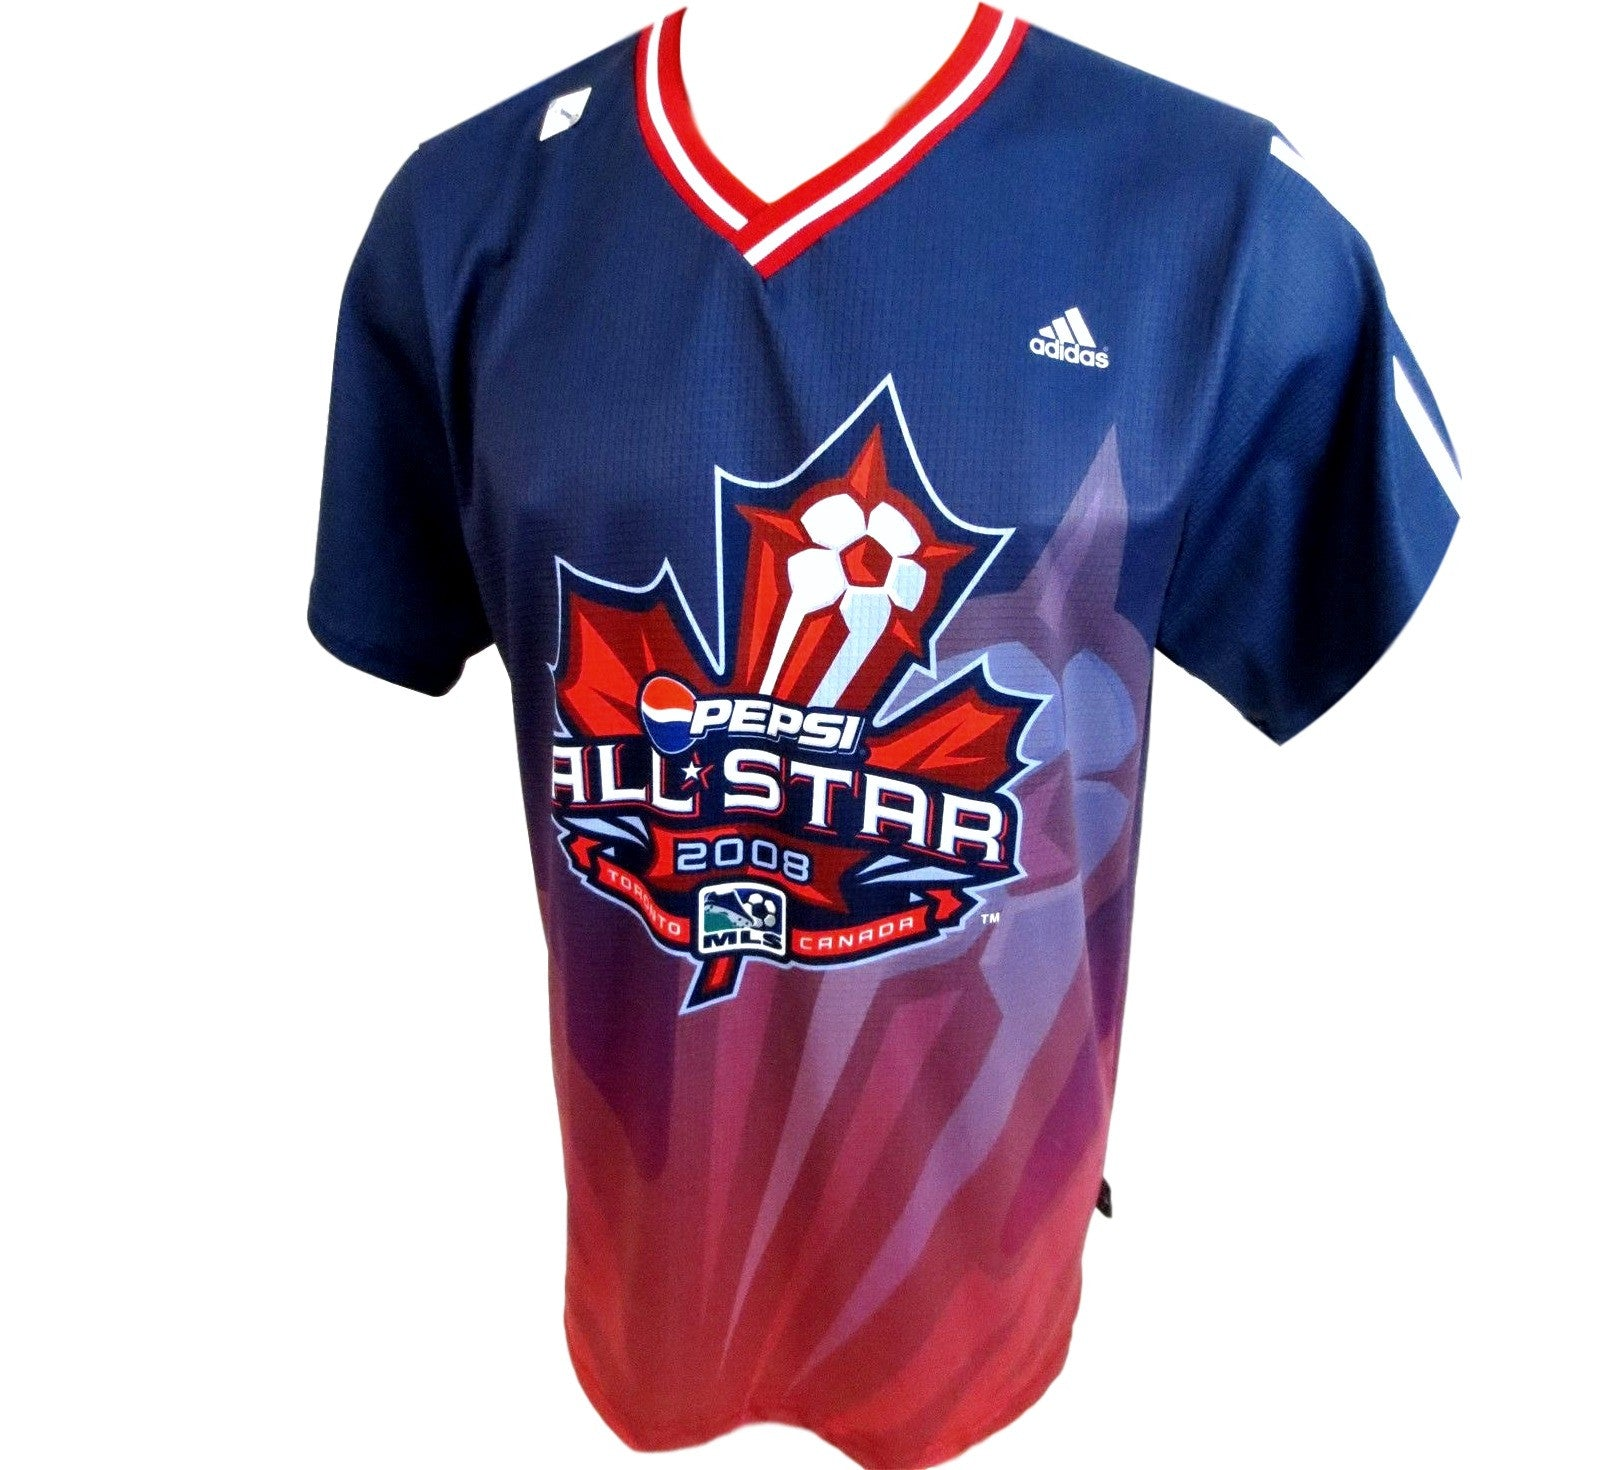 2008 MLS All Star Soccer Jersey - And Still